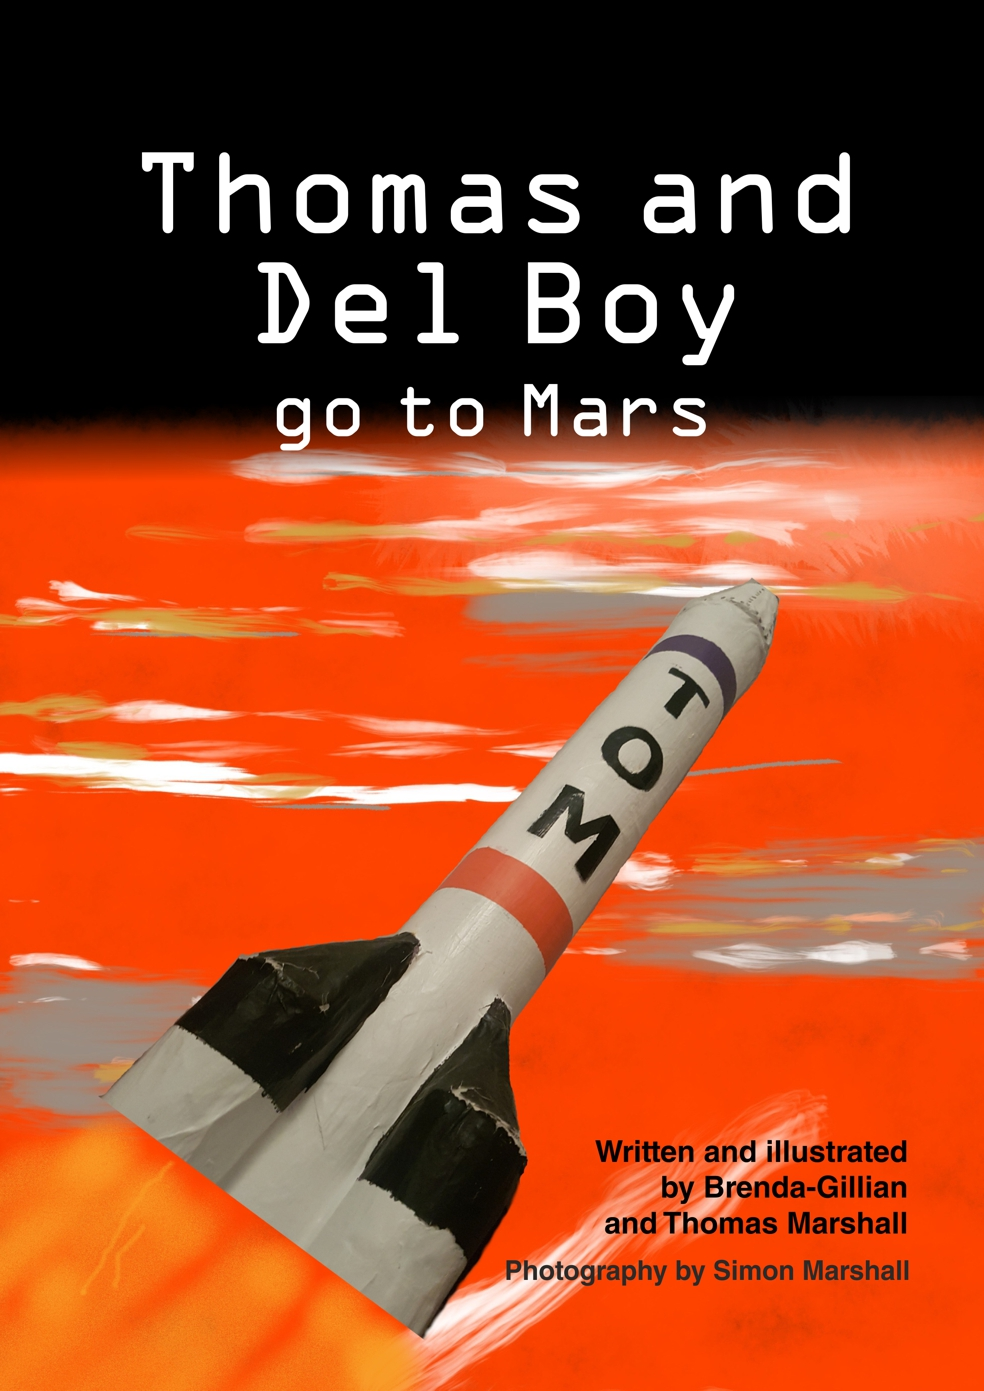 Thomas and Del Boy go to Mars book cover